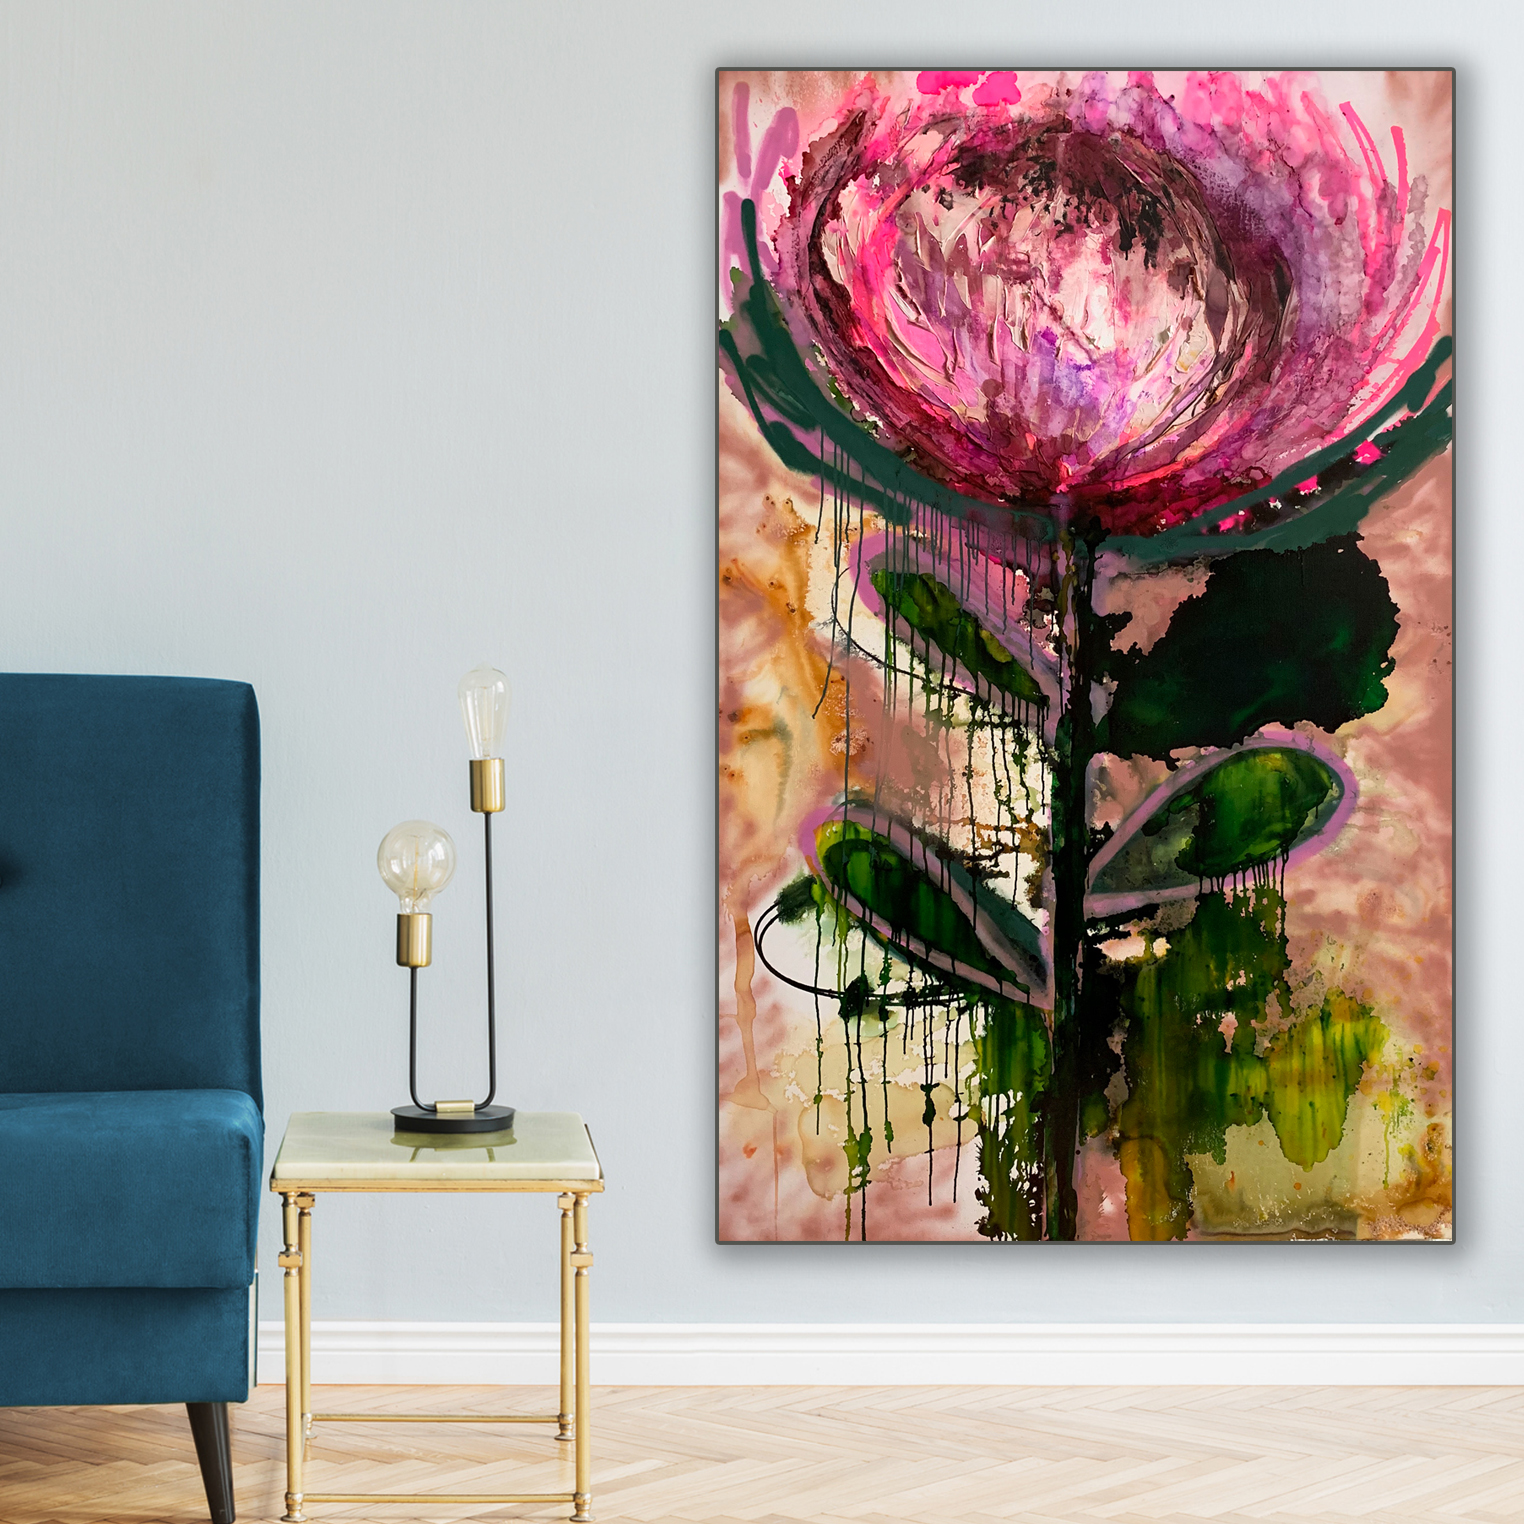 Floral Paintings Au Protea 'Belle' by Jessica Skye Baker